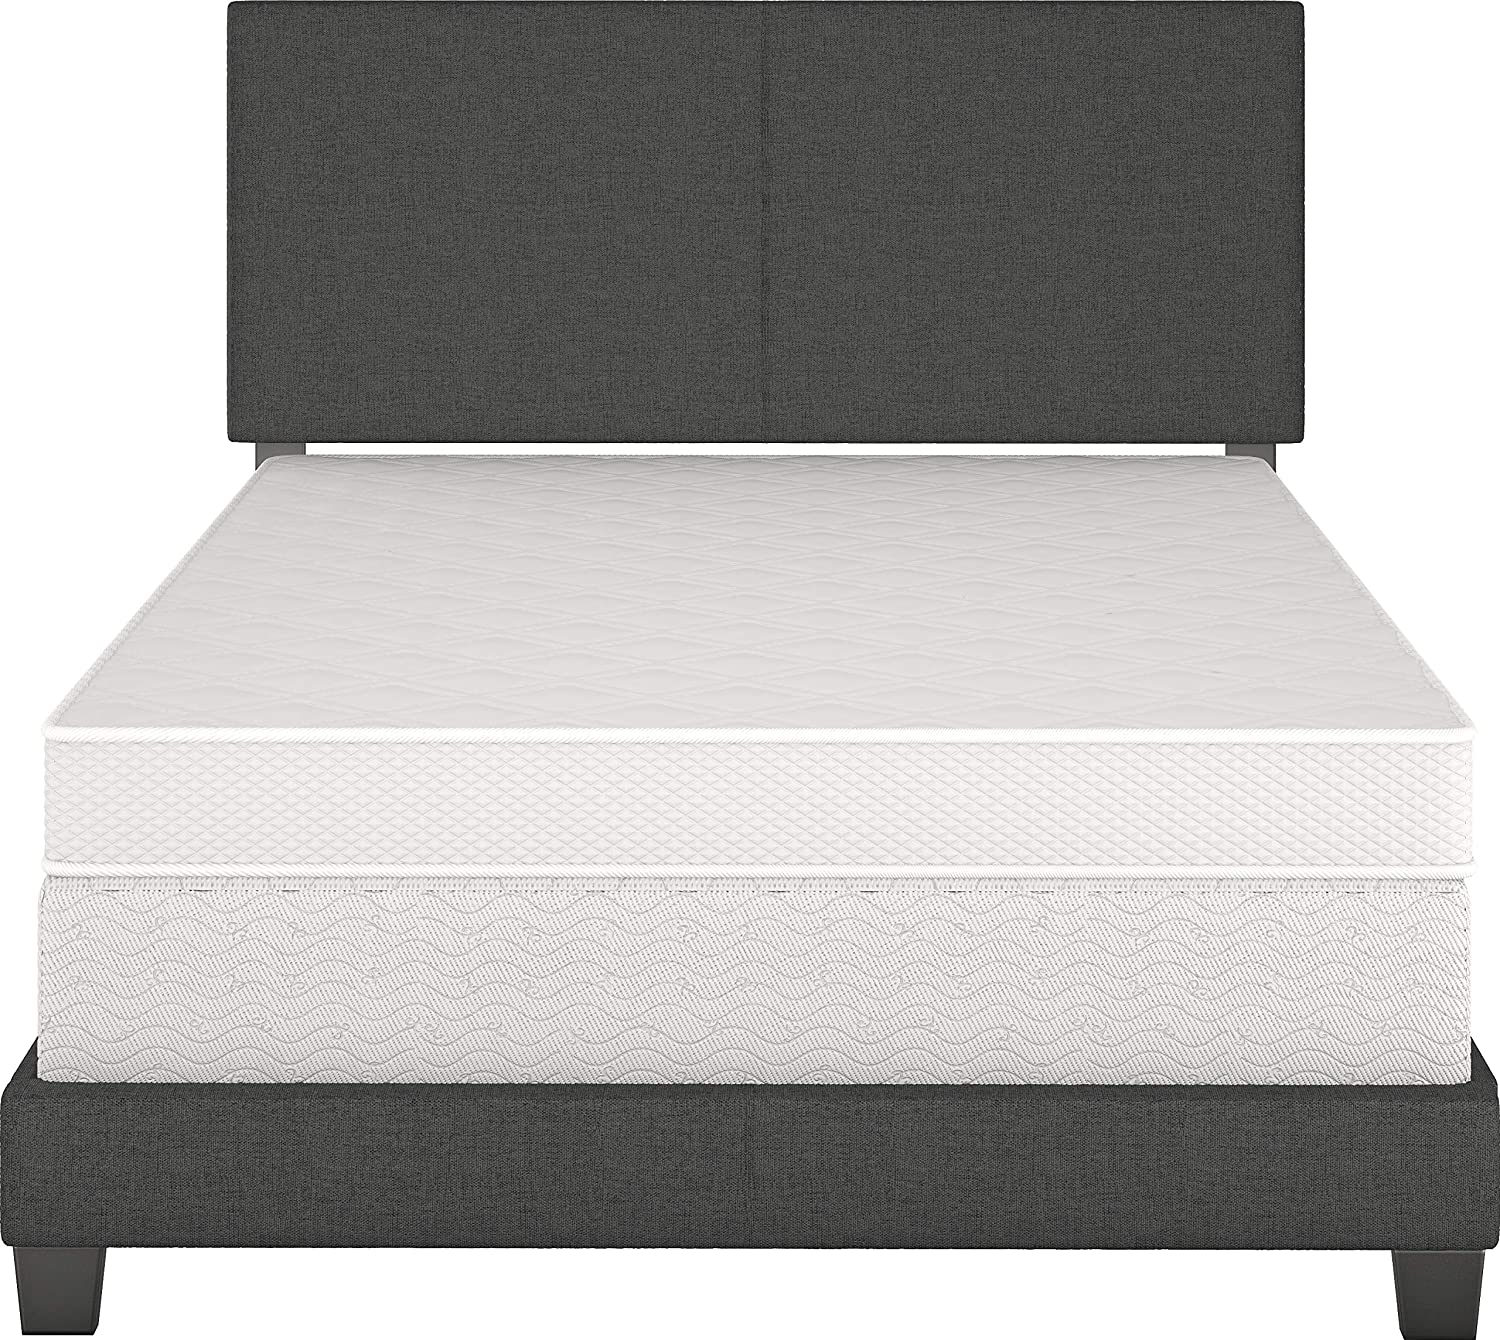 Faux Leather Boyd Sleep Montana Upholstered Platform Bed Frame with Headboard Queen Black